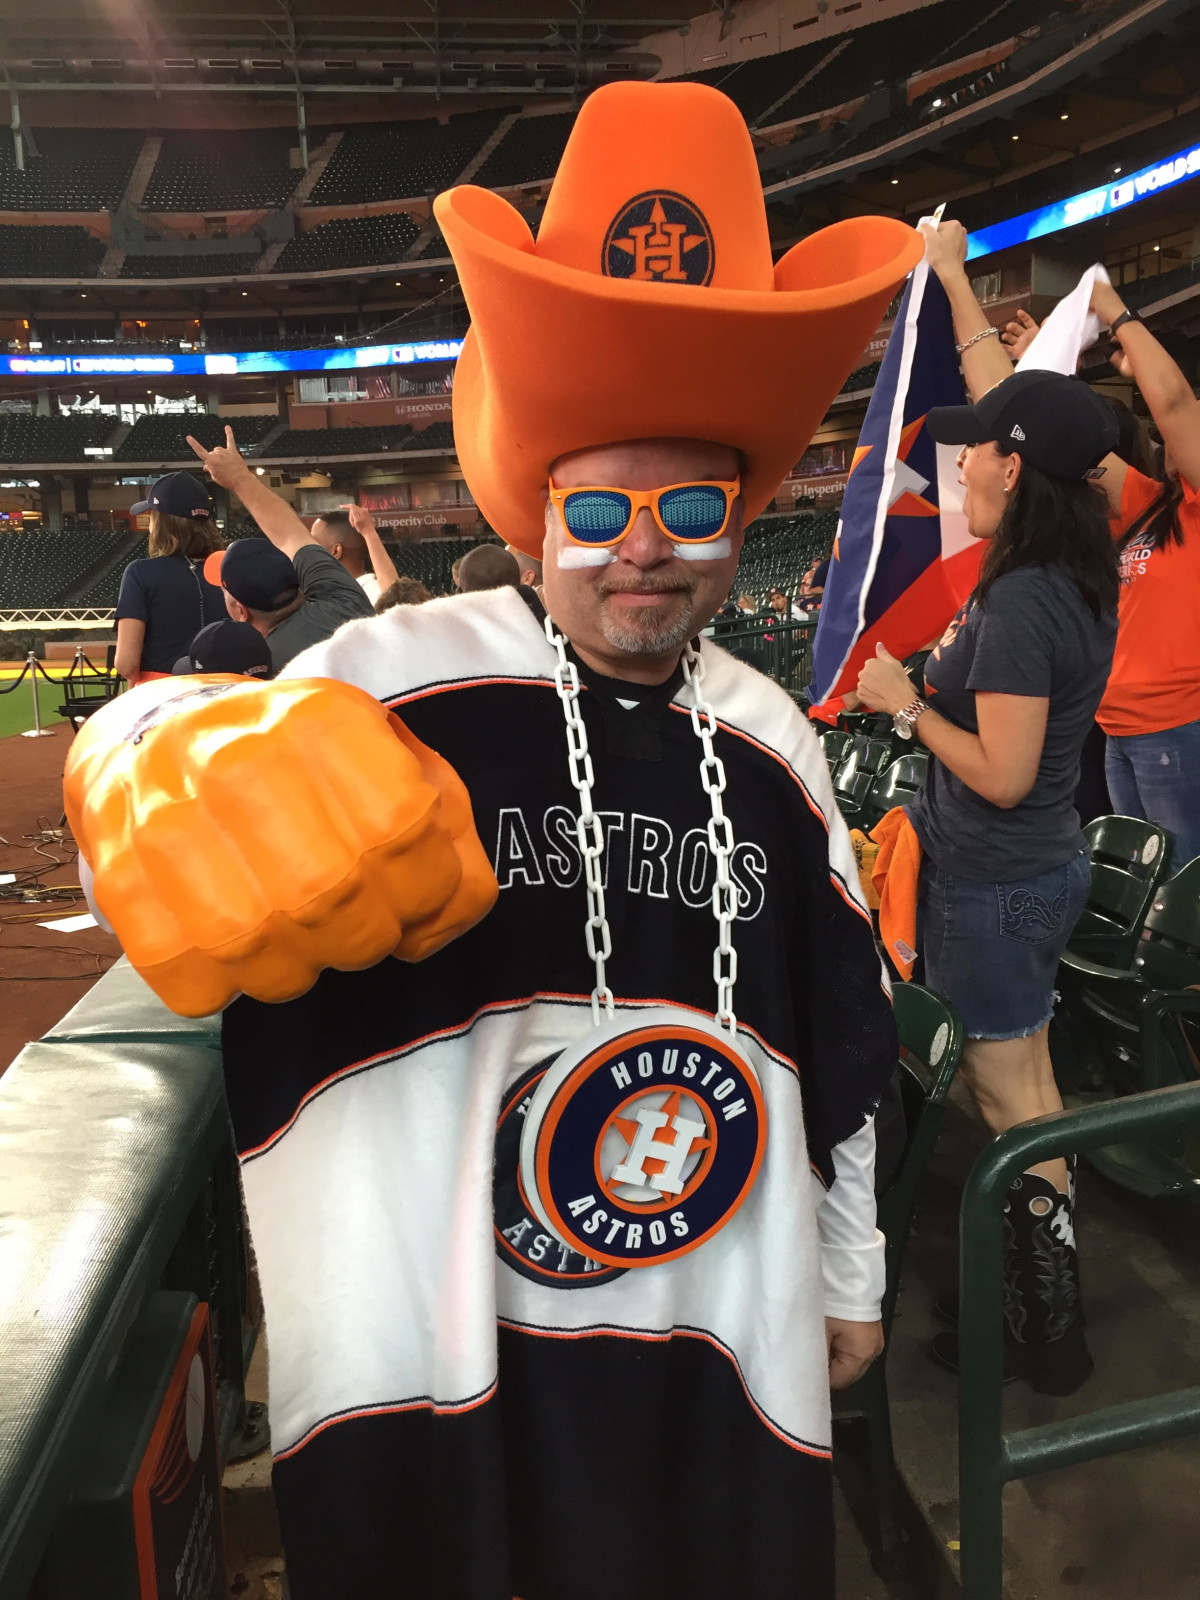 David Arriasola in a foam hat at World Series Game 7 Watch Party at Minute Maid Park